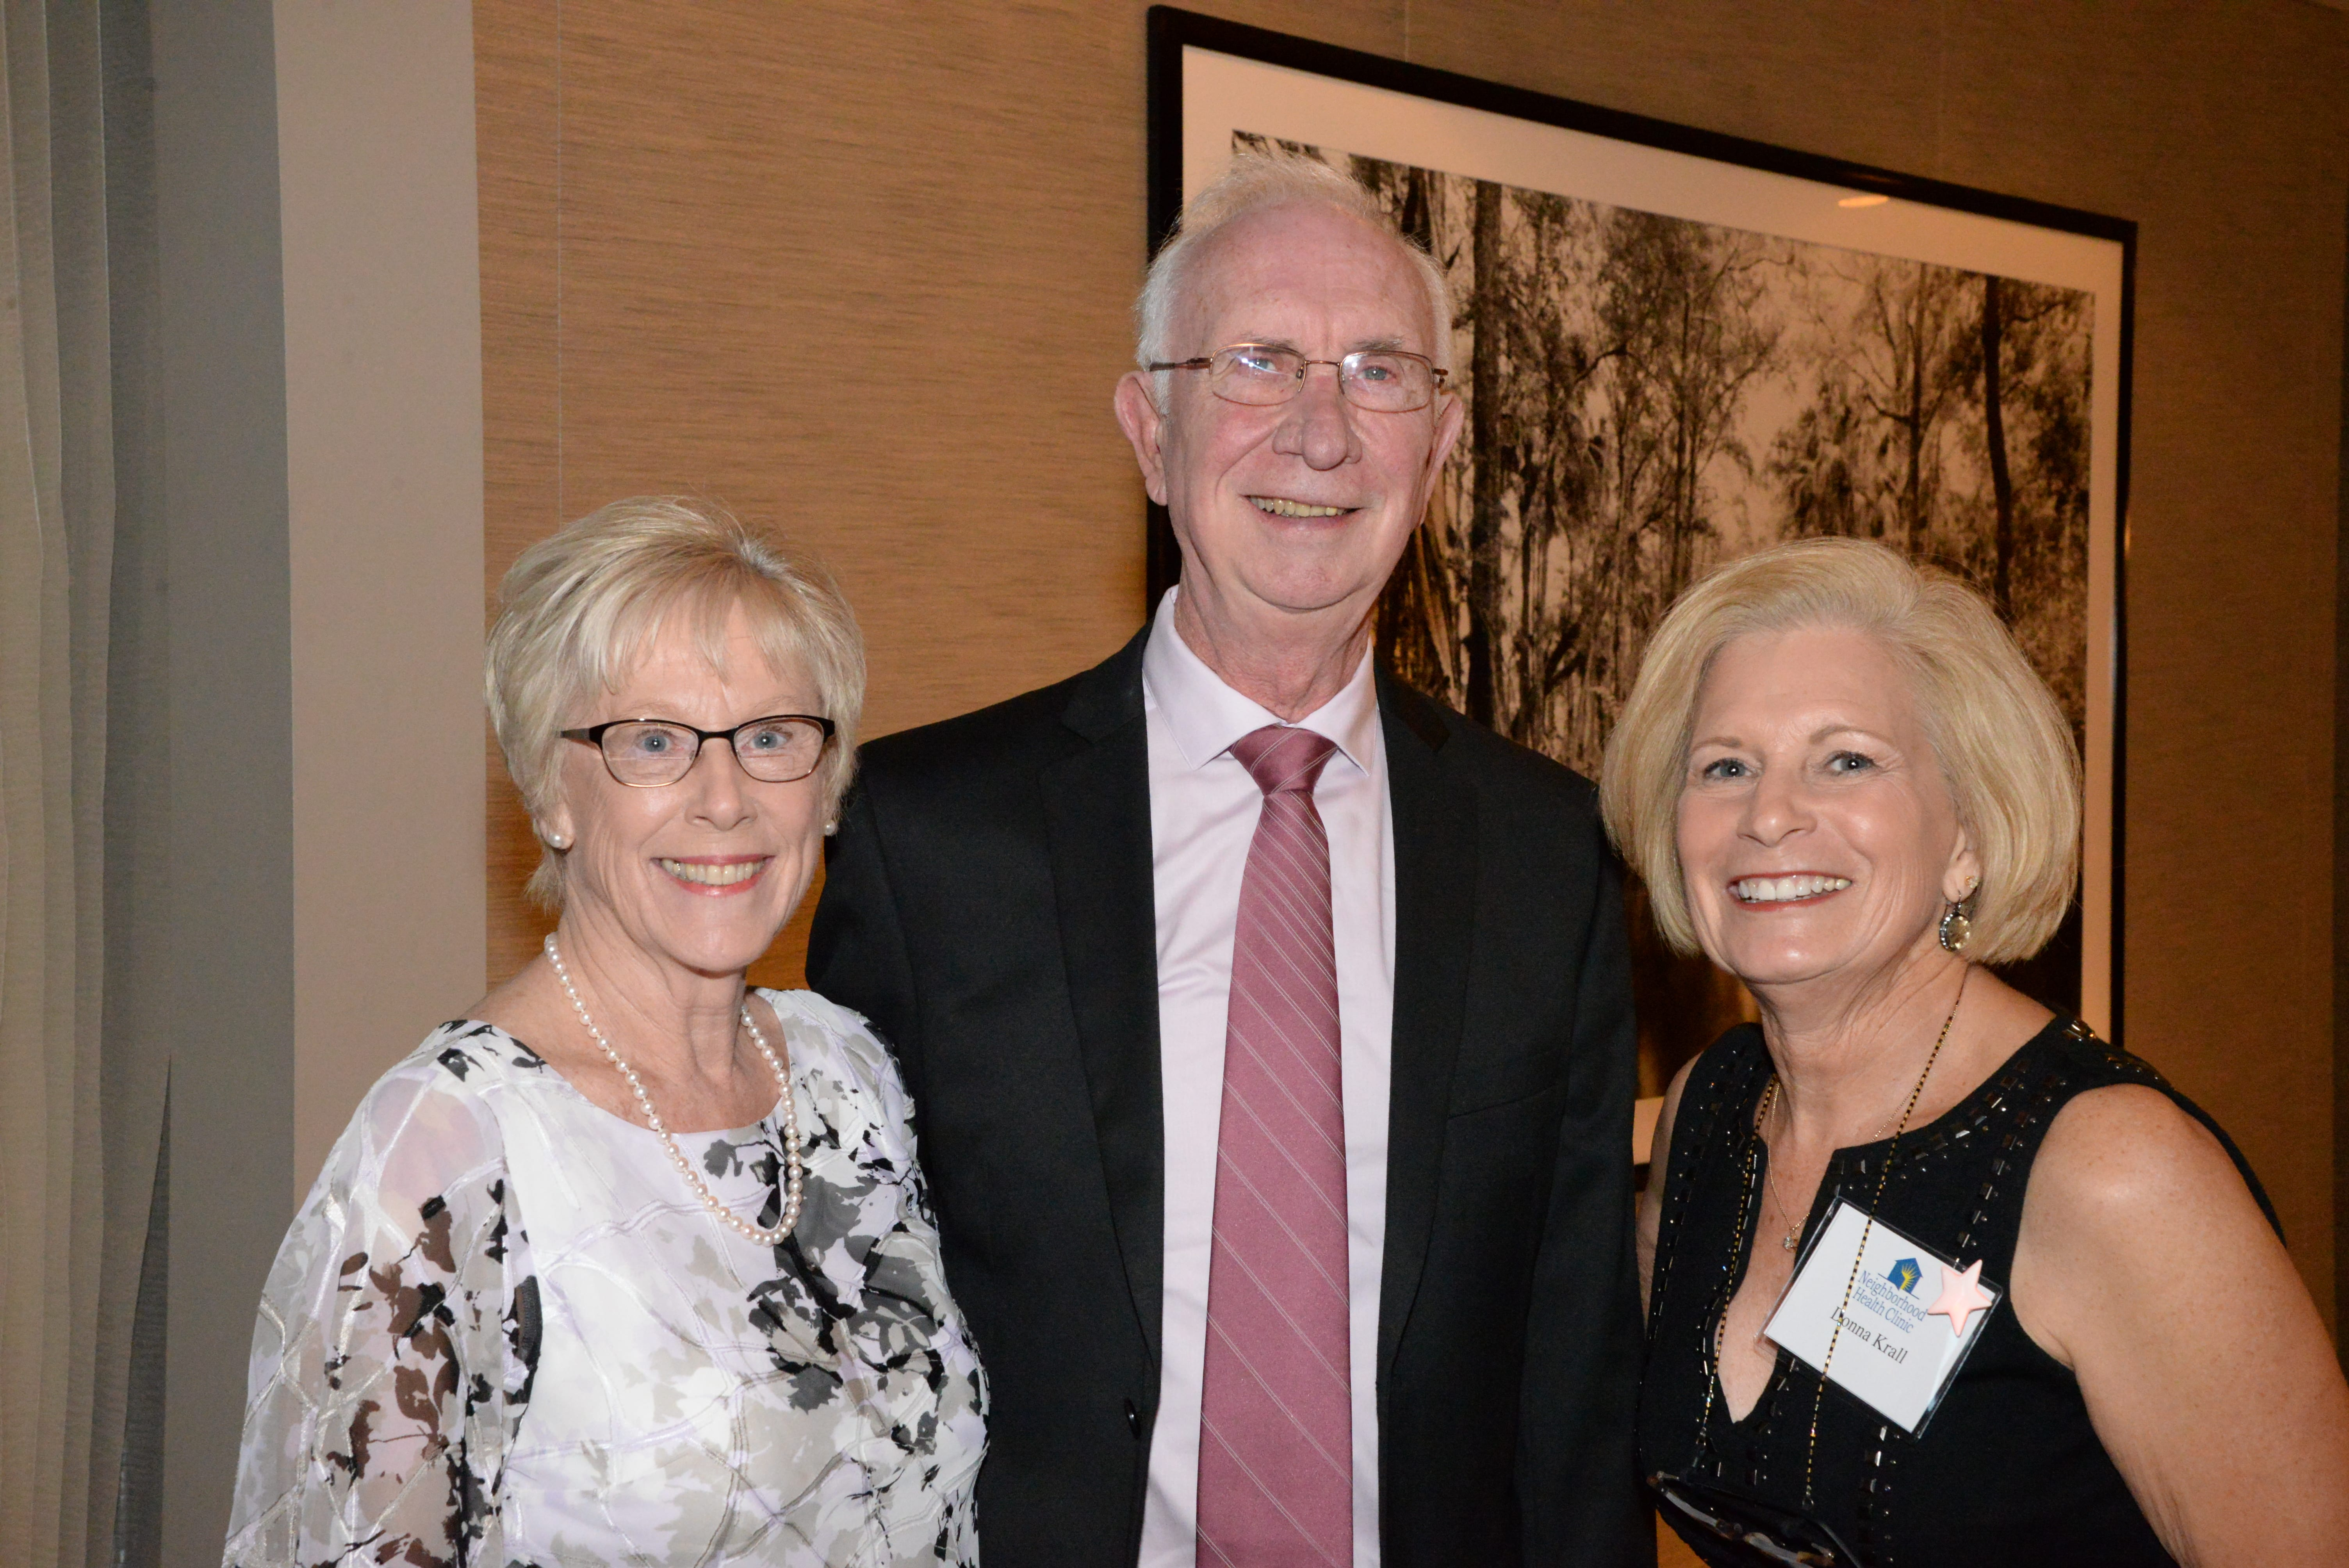 Gail Bradley, Robert Bradley and Donna Krall